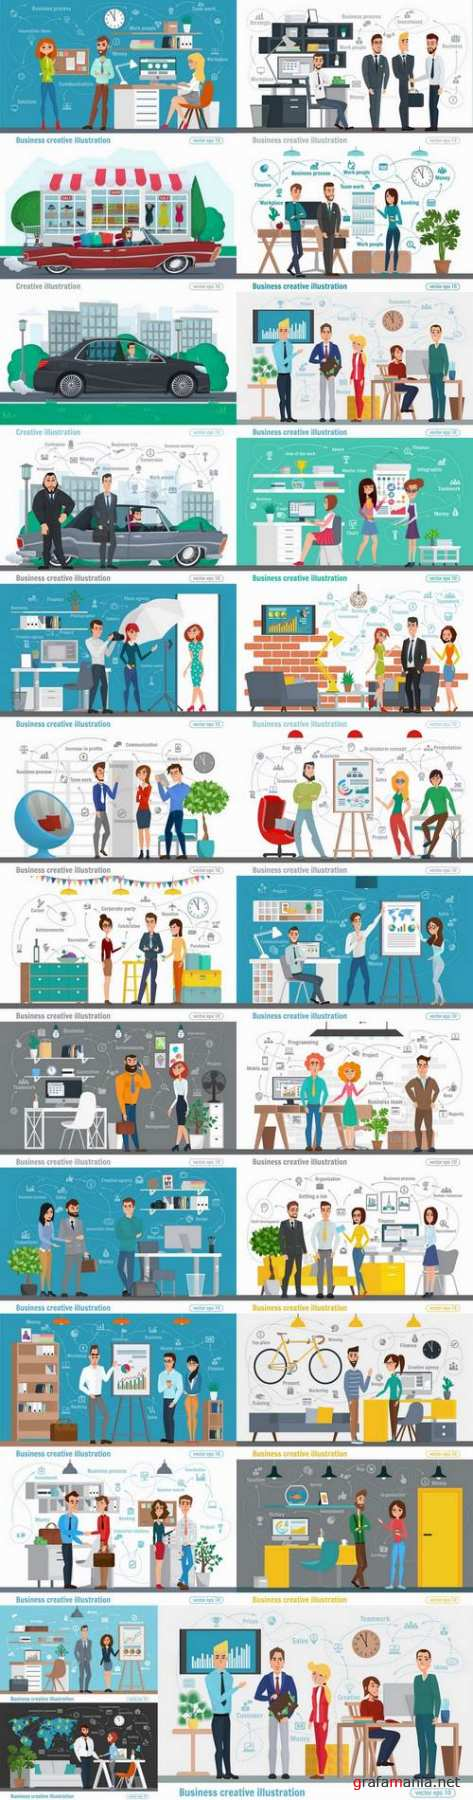 Business infographics work life sphere of activity a vector image 25 EPS